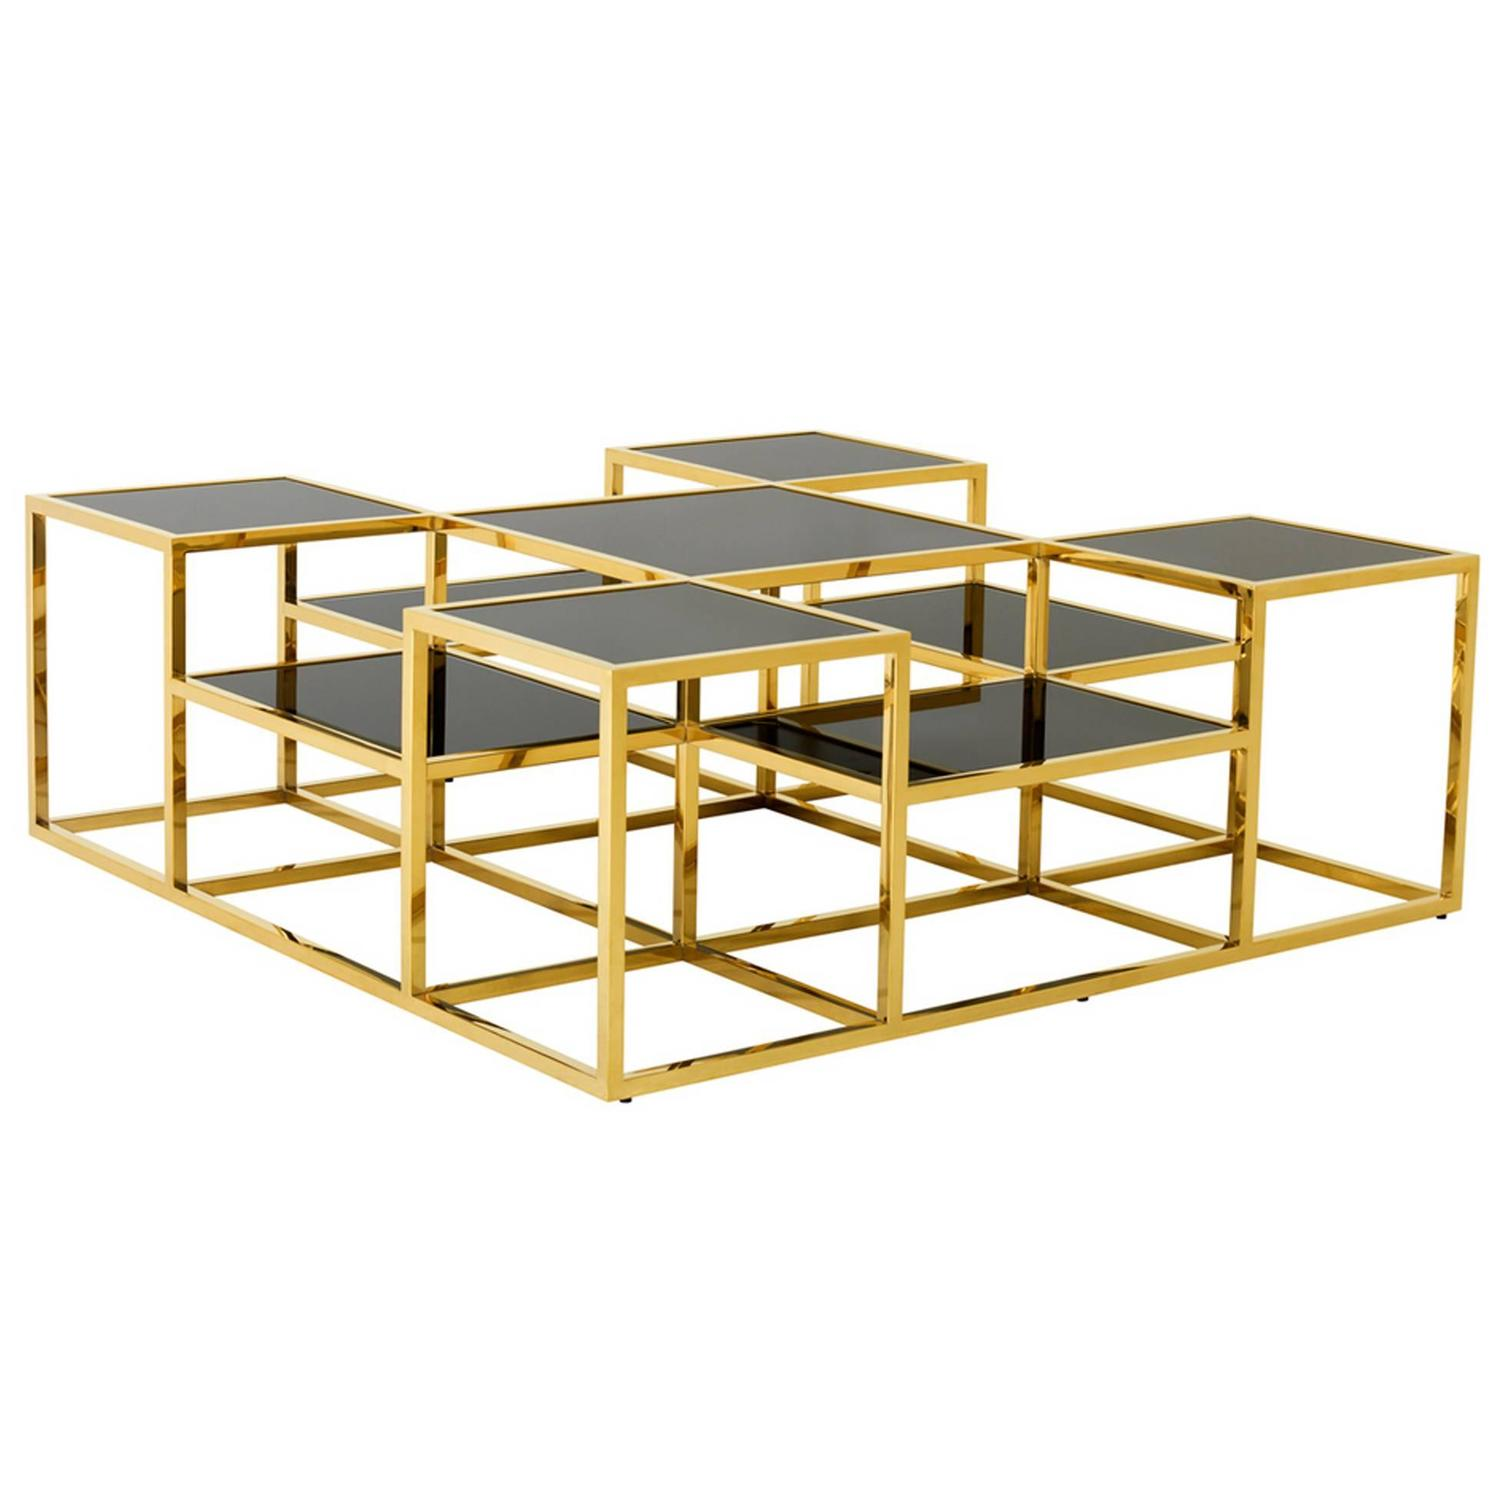 Square Tops Coffee Table In Gold Finish With Smoked Glass Tops For Sale At 1stdibs